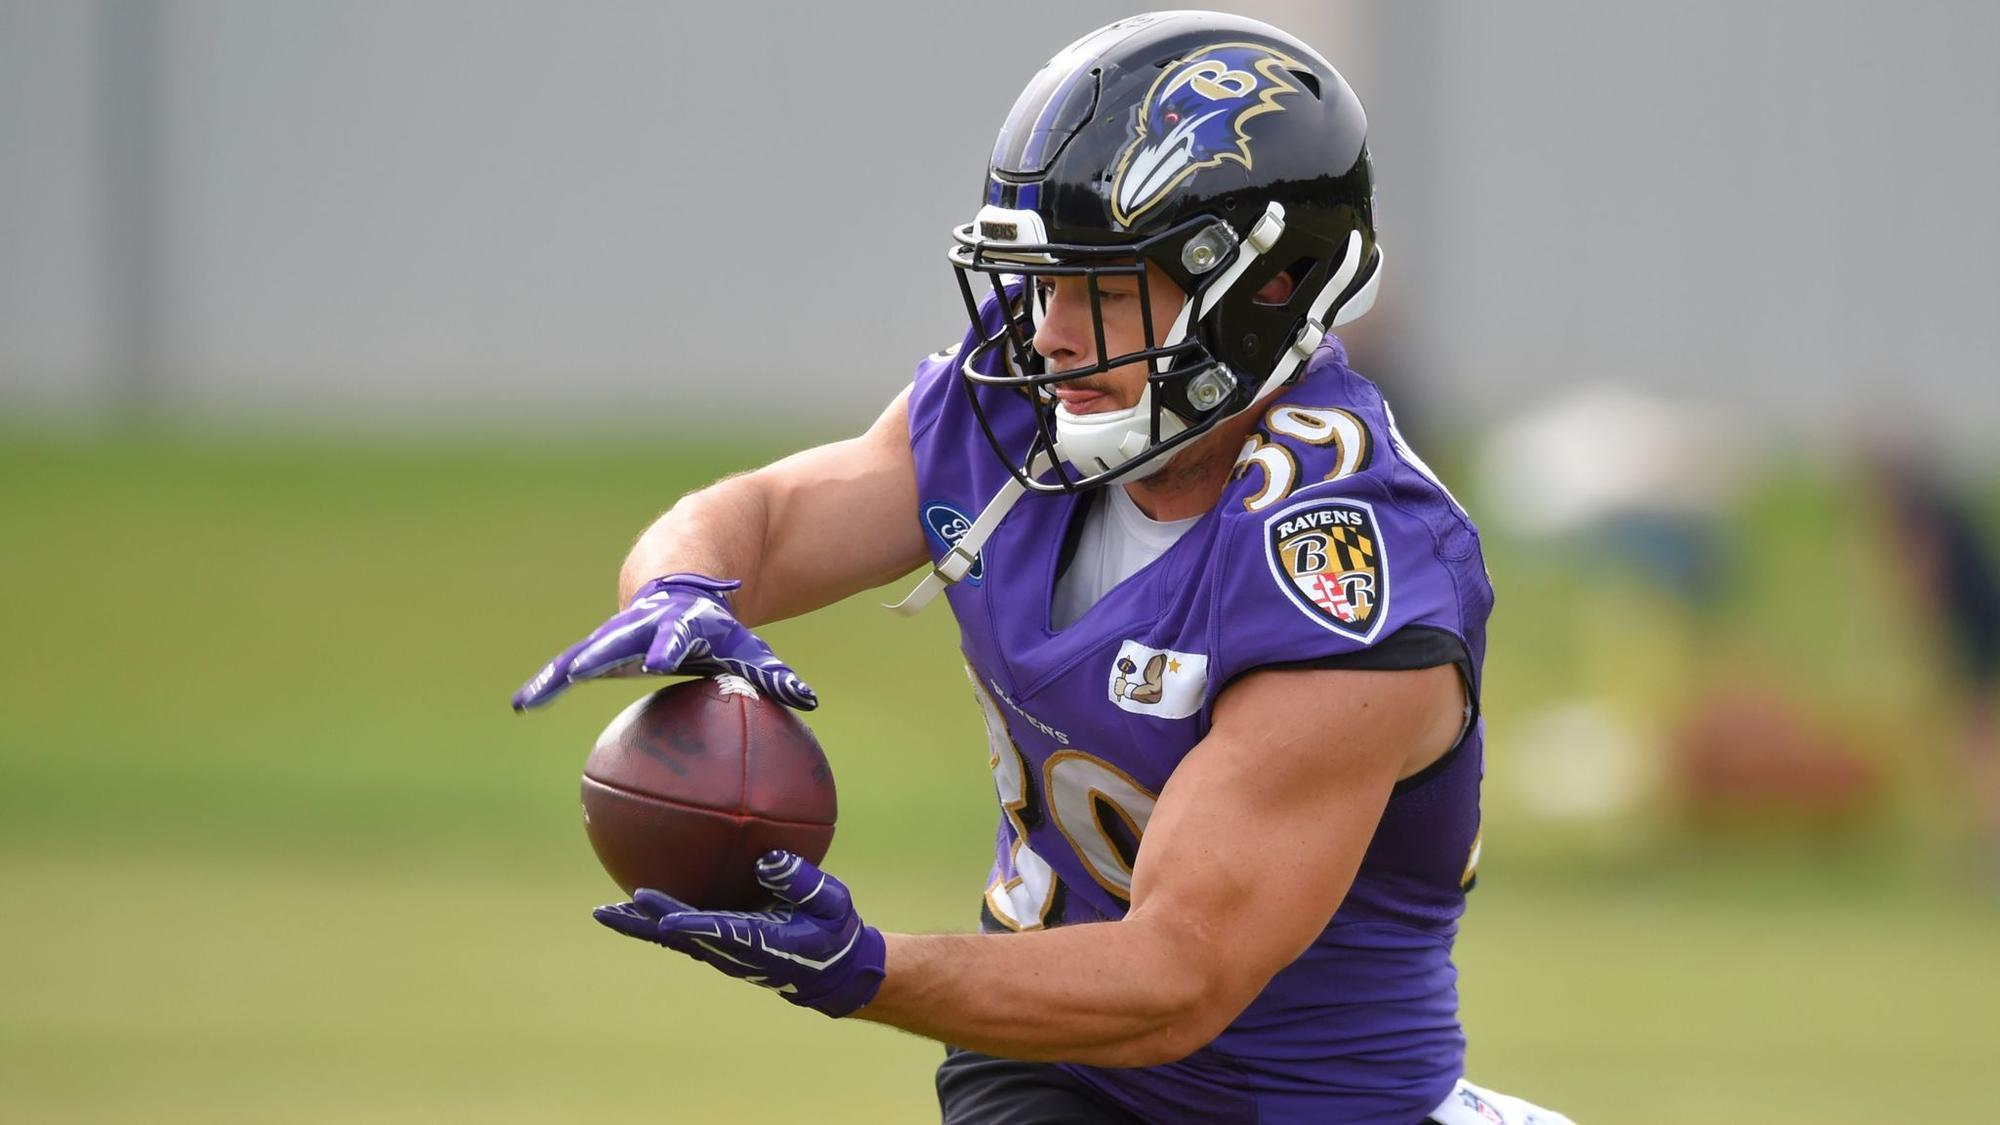 Bs-sp-ravens-danny-woodhead-return-1116